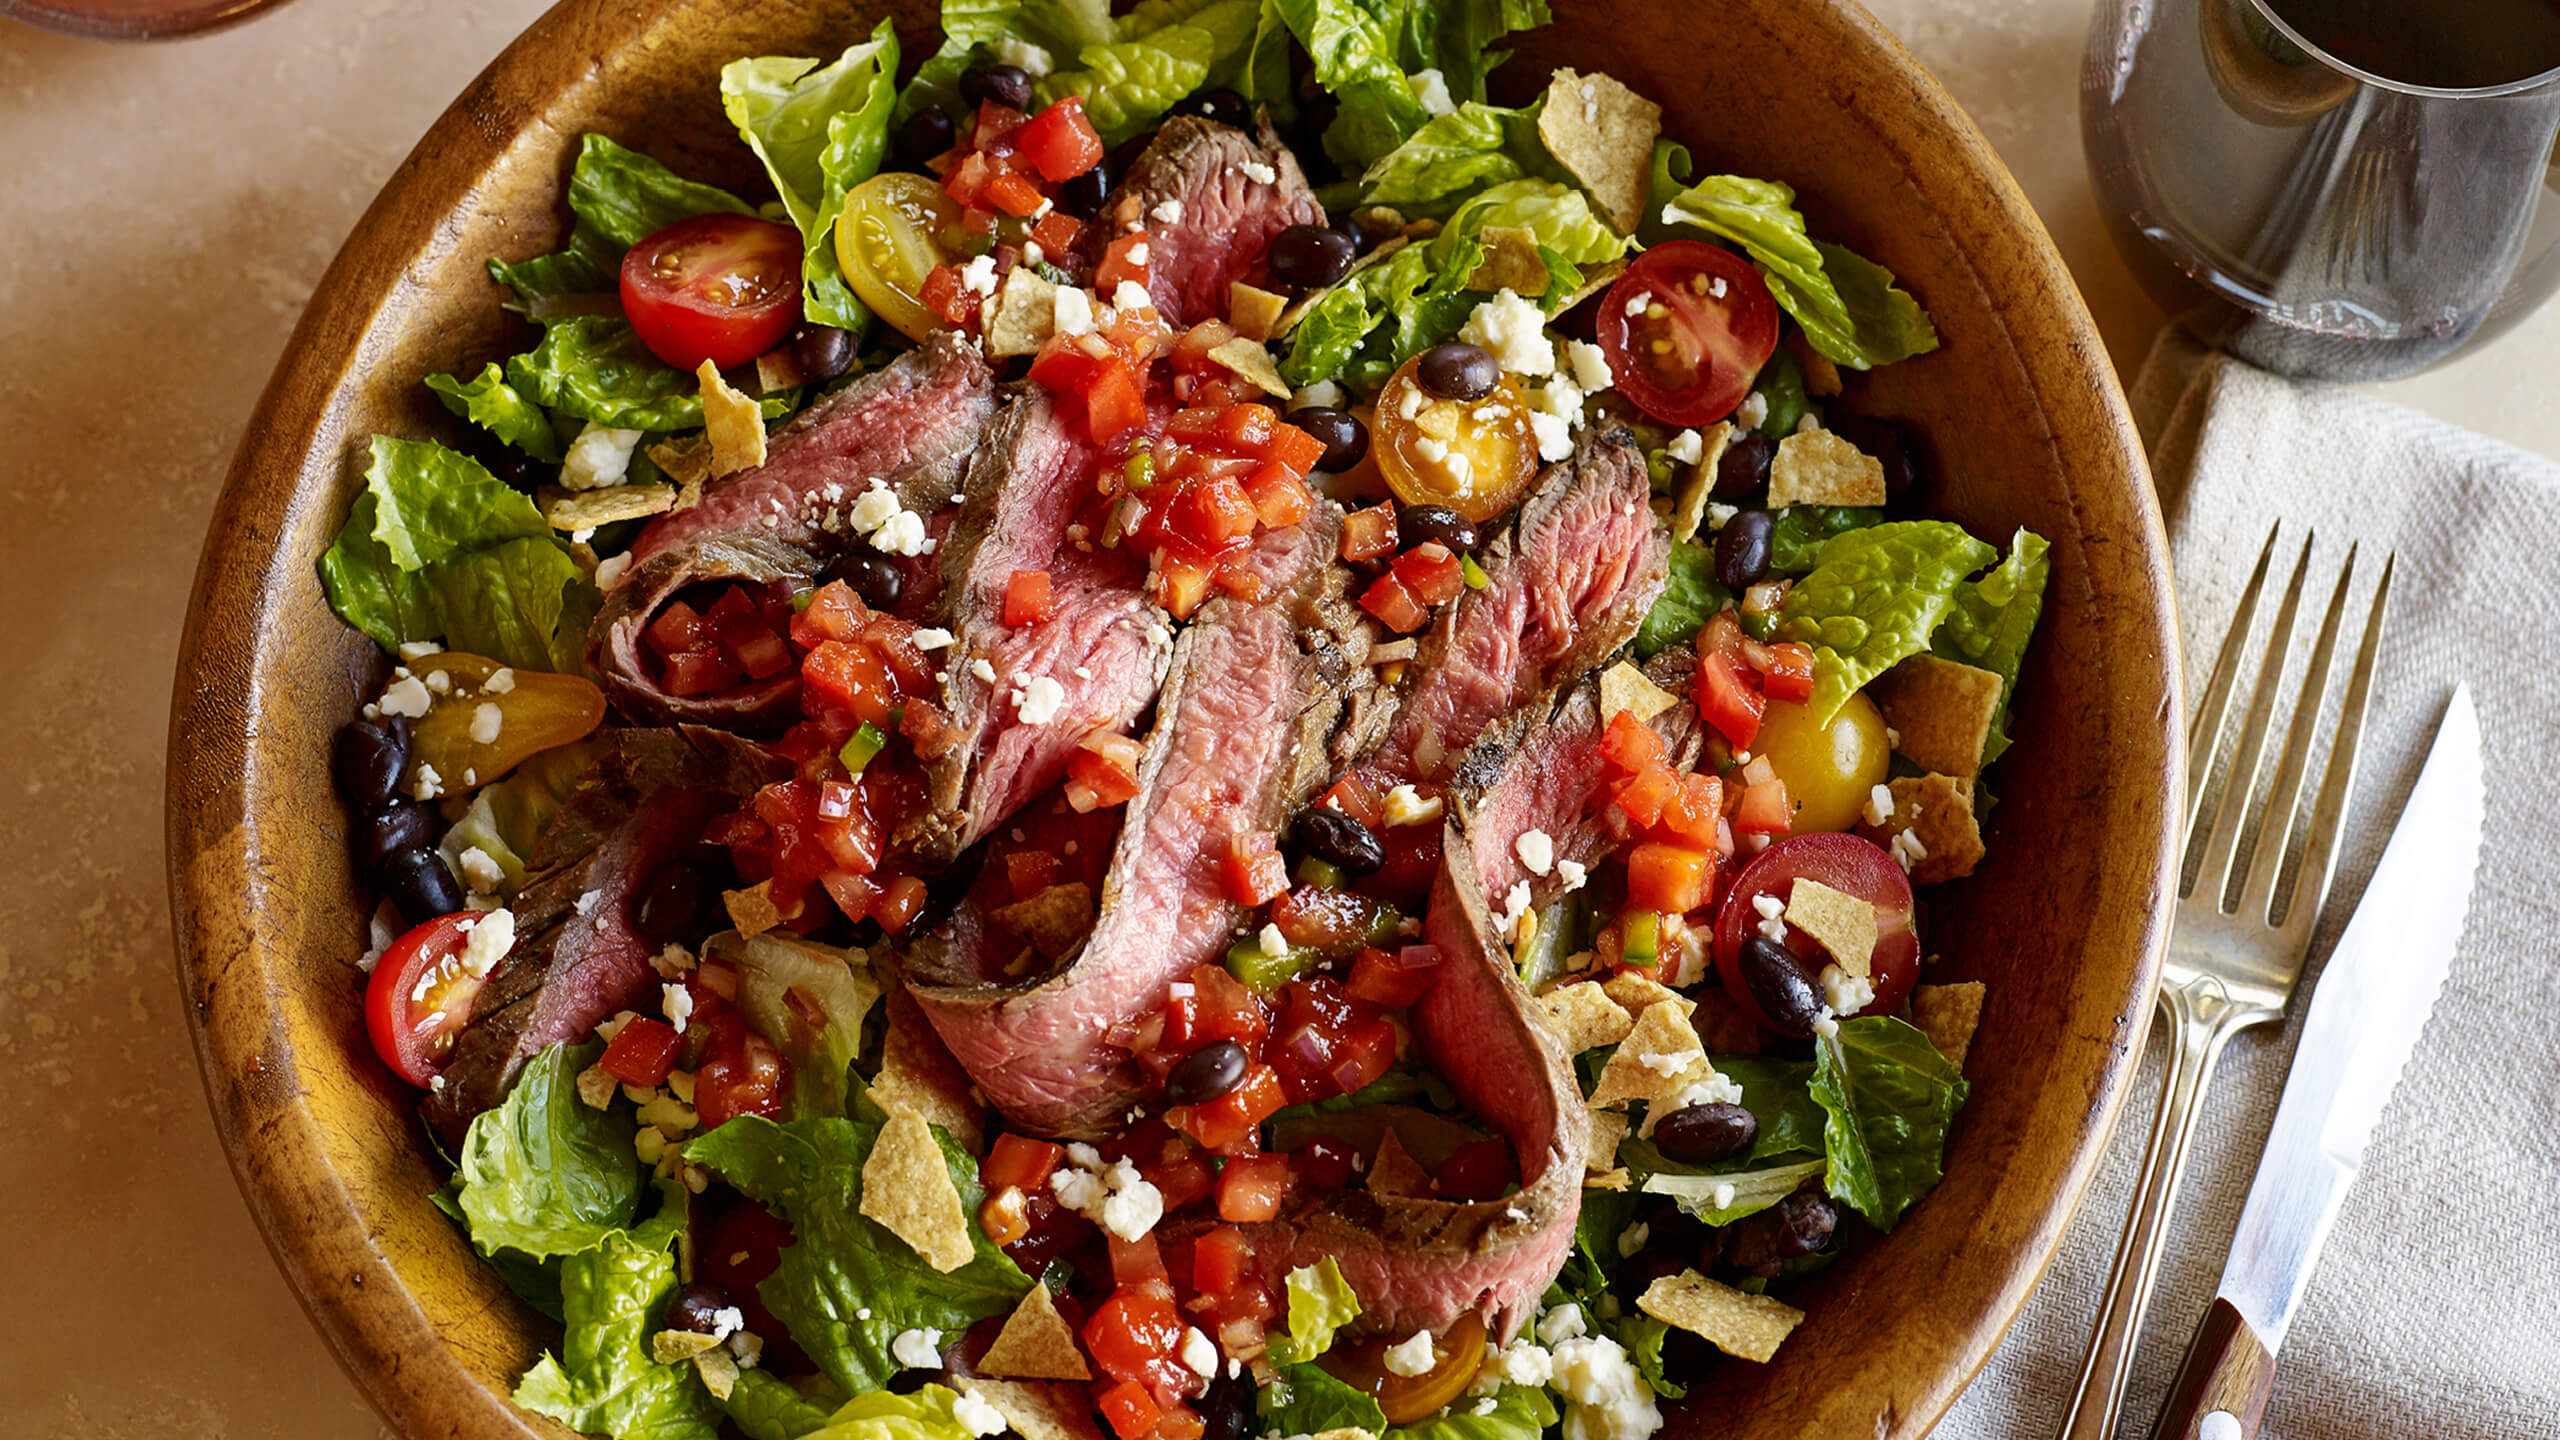 Southwest Sriracha Steak Salad